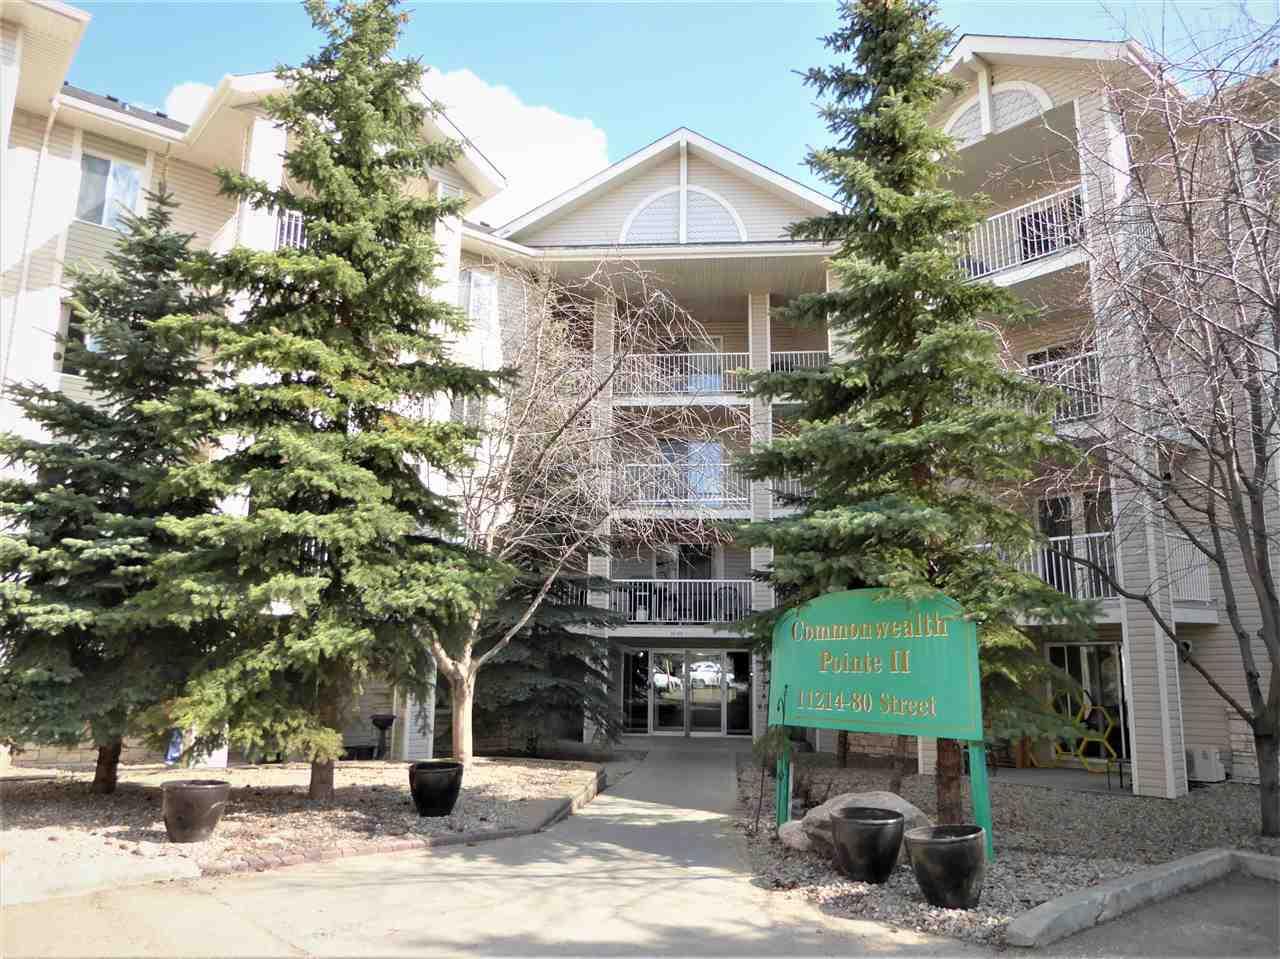 A rare find, you are going to love!  All utilities included in this monthly condo fee! Well built and well maintained southwest corner unit with wrap around covered deck for you to enjoy. A warm & inviting home, freshly painted with lots of big windows. There are 2 bedrooms and 2 baths. Sunny & bright kitchen with eating nook that overlooks the living and dining room. The romantic size master bedroom  has his and her closets with 4 piece ensuite. The 2nd bedroom is also good size. In suite laundry, and walk in pantry  & storage room. This suite comes complete with 6 appliances,  assigned parking stall and visitor parking. Steps away from shopping and public transit, LRT, close to downtown, public parks, Nait, and Grant McEwan.  Perfect place to call home!